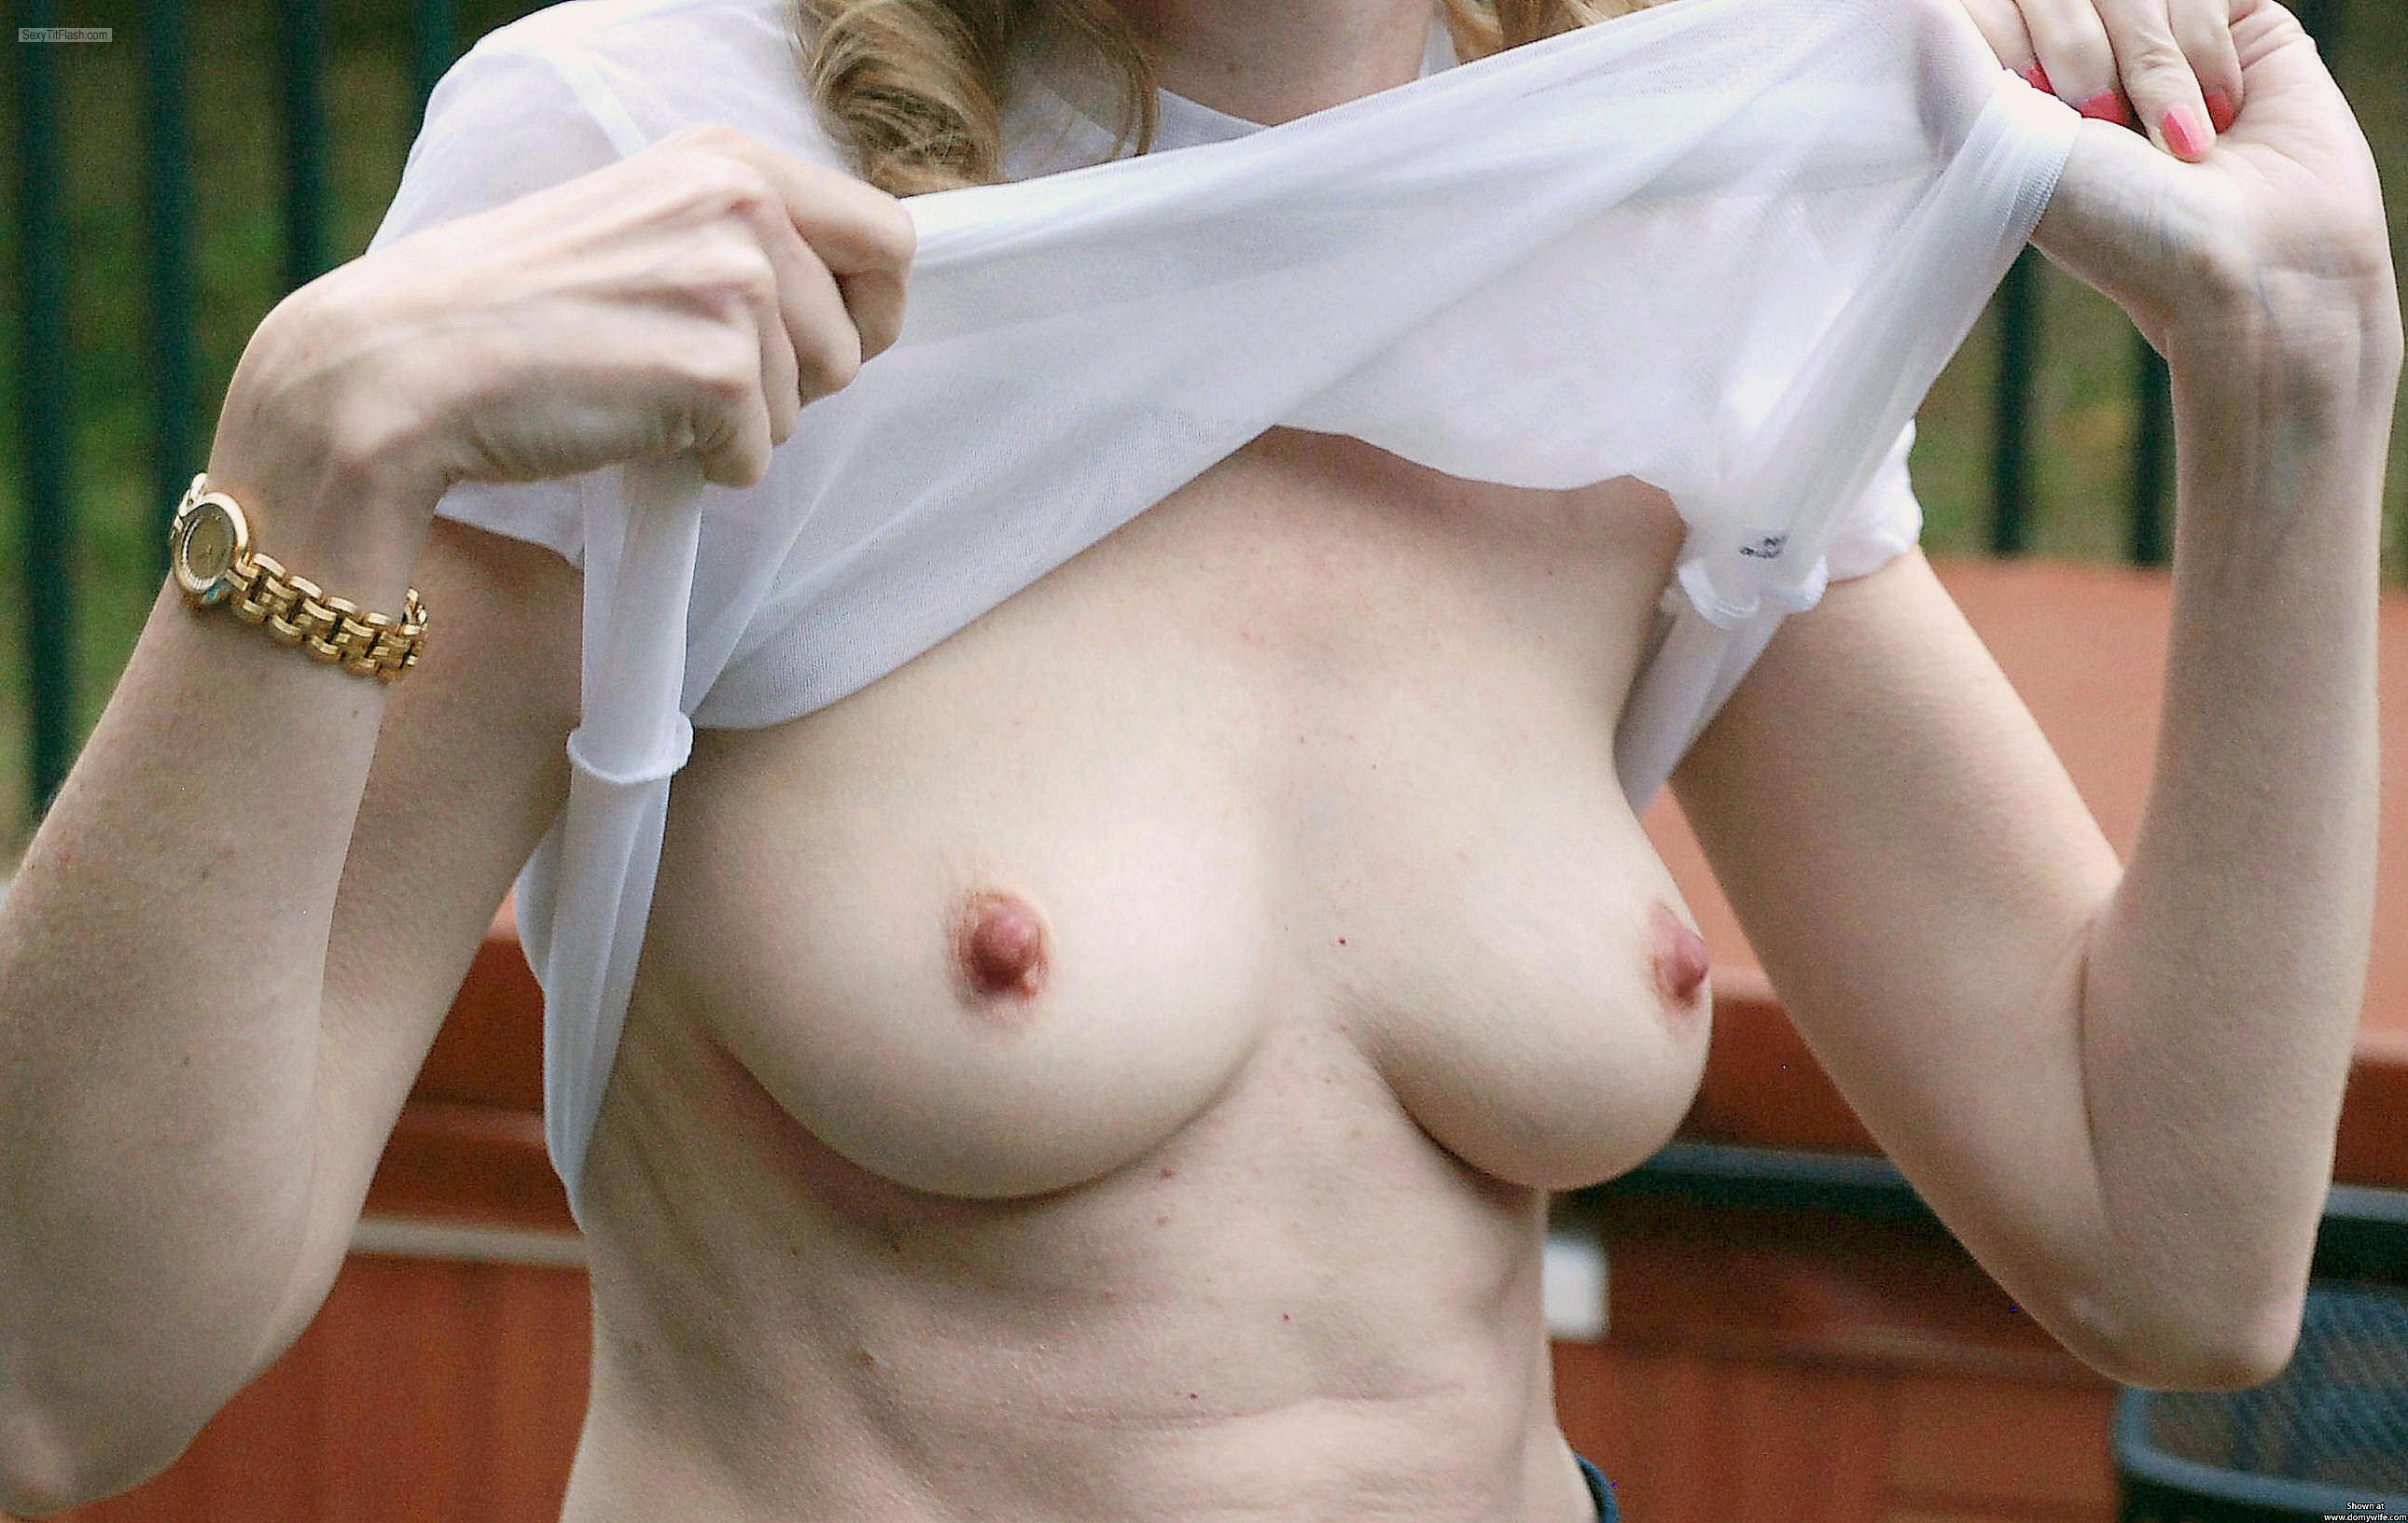 Tit Flash: Wife's Medium Tits - Cayman\\\\\\\\\\\\\\\'s Wife from United States